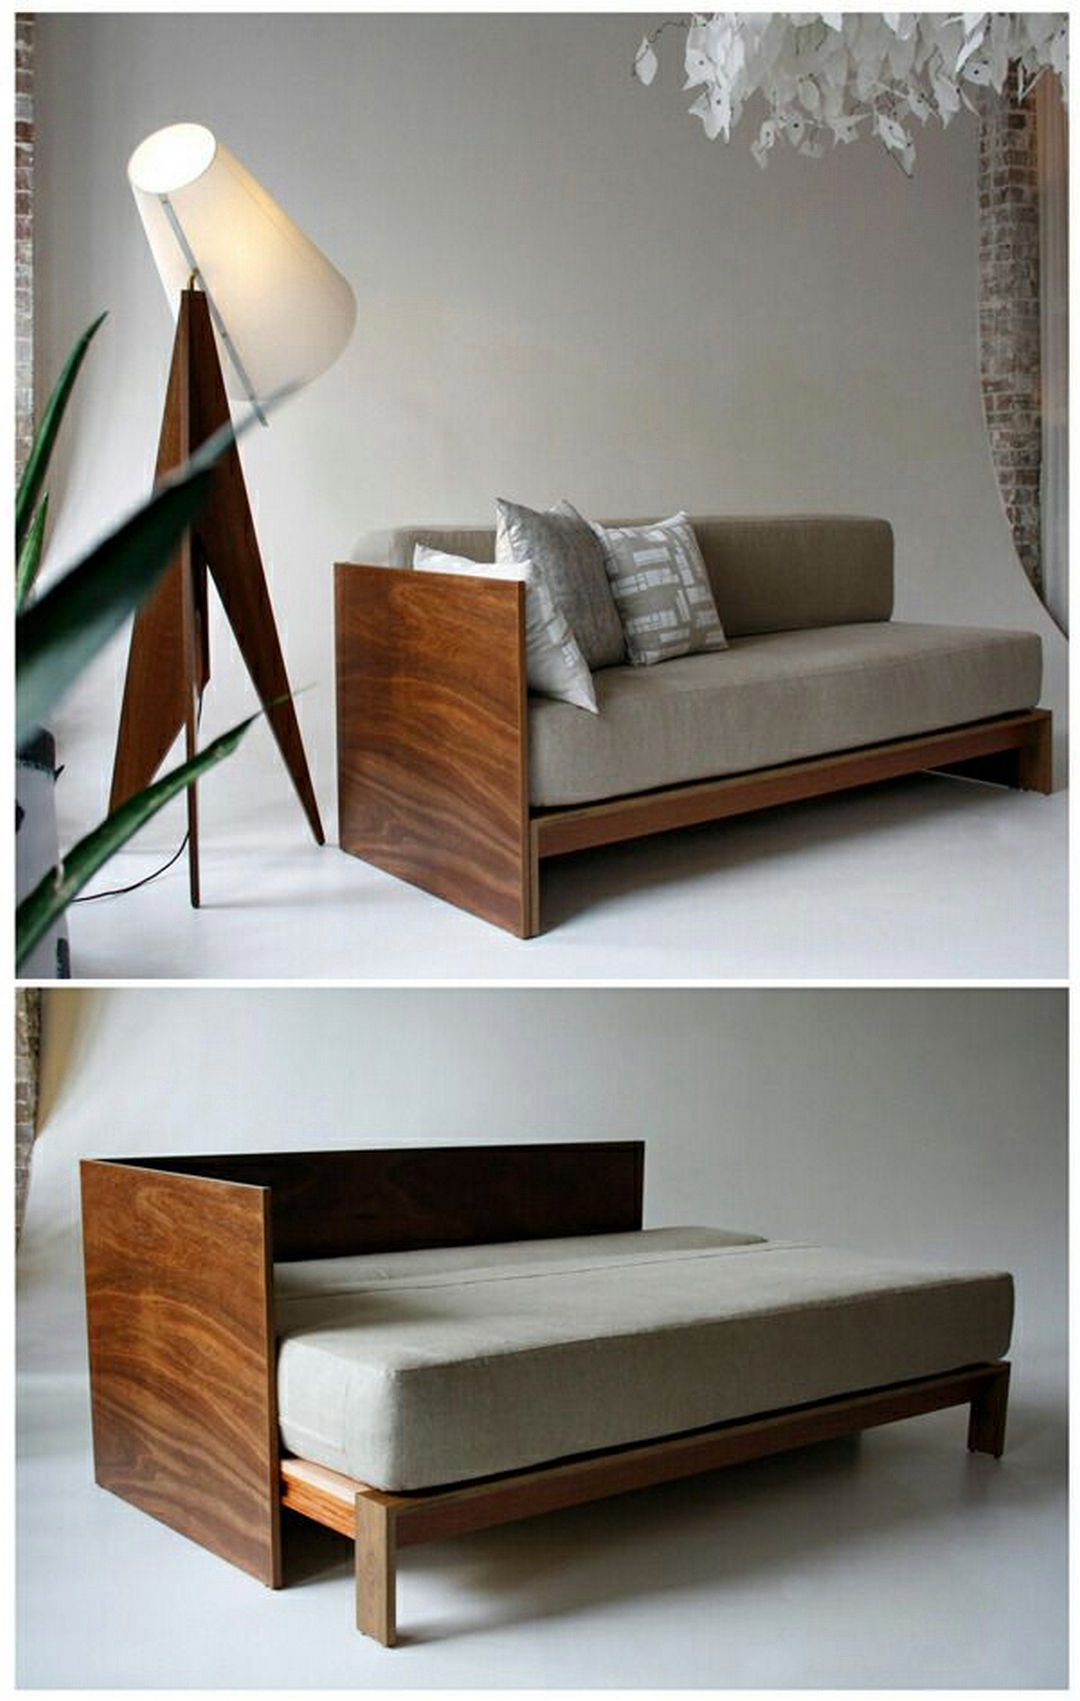 Muebles De Madera Multifuncionales 123 Beautiful Modern Sofa Designs Apt Redecorare Muebles